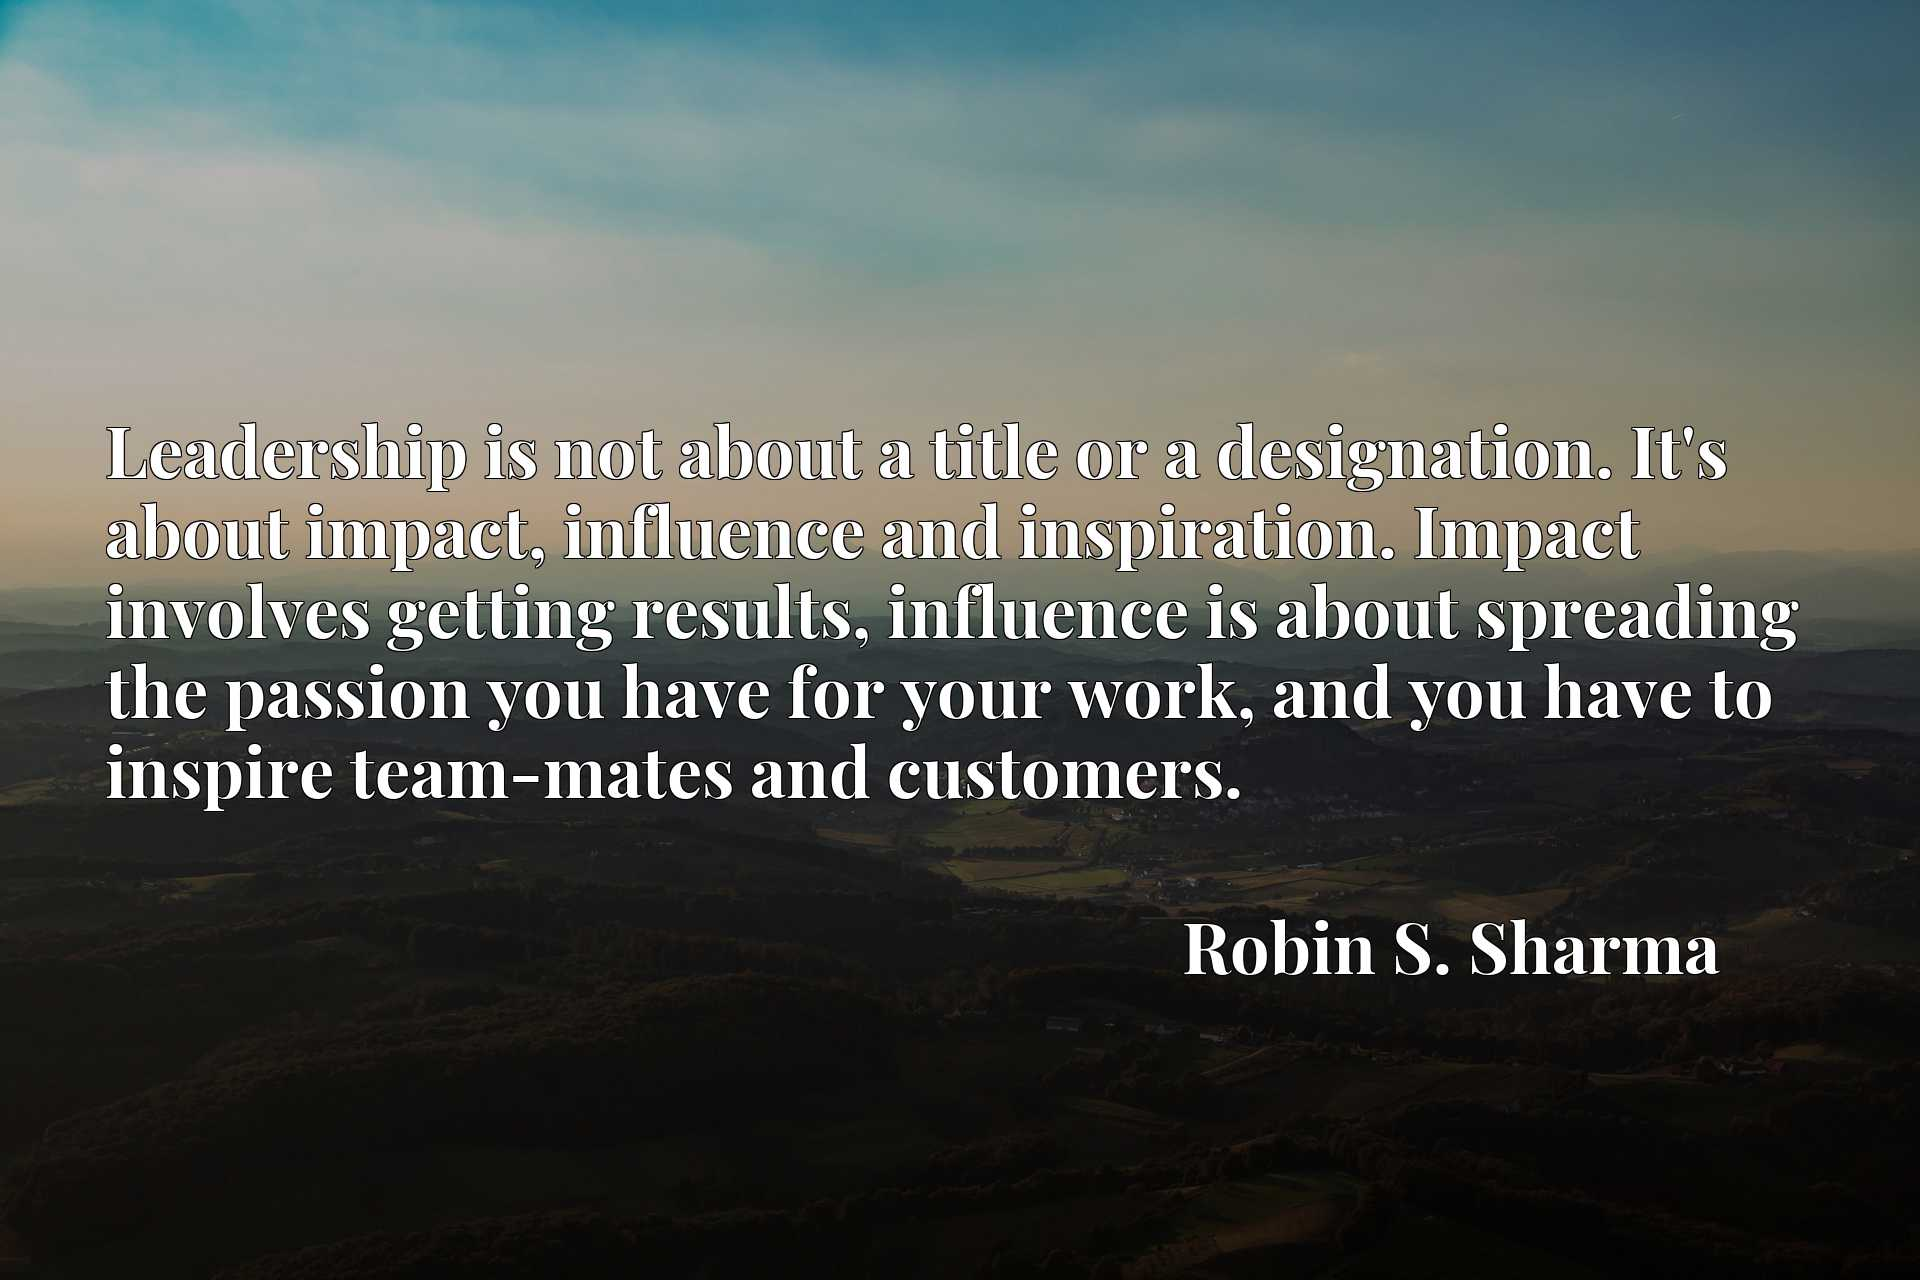 Leadership is not about a title or a designation. It's about impact, influence and inspiration. Impact involves getting results, influence is about spreading the passion you have for your work, and you have to inspire team-mates and customers.